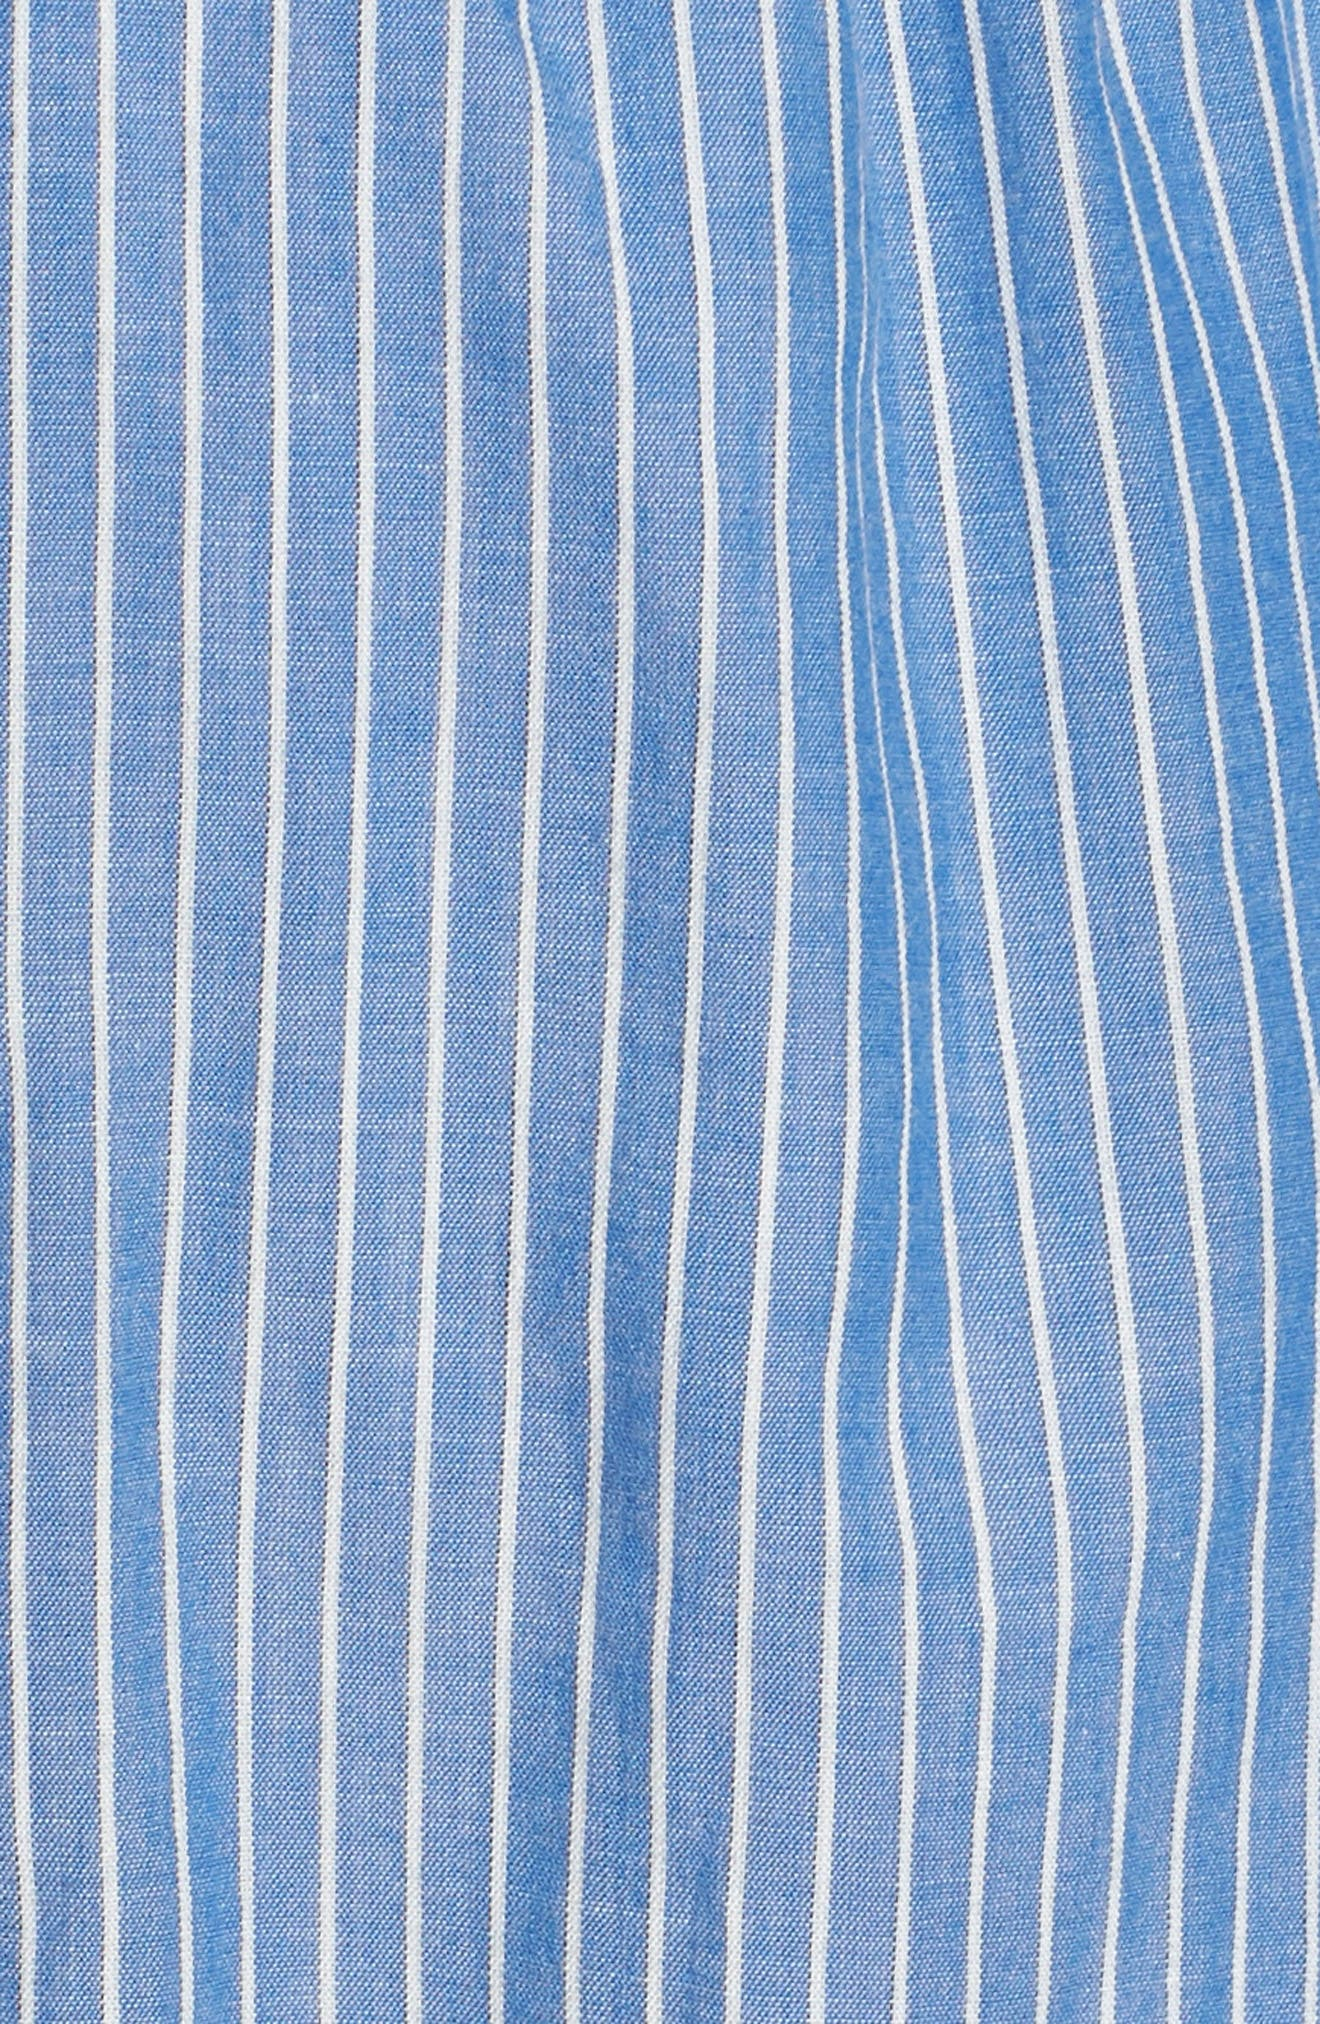 Embroidered Stripe Cotton Swing Dress,                             Alternate thumbnail 5, color,                             Yacht Blue